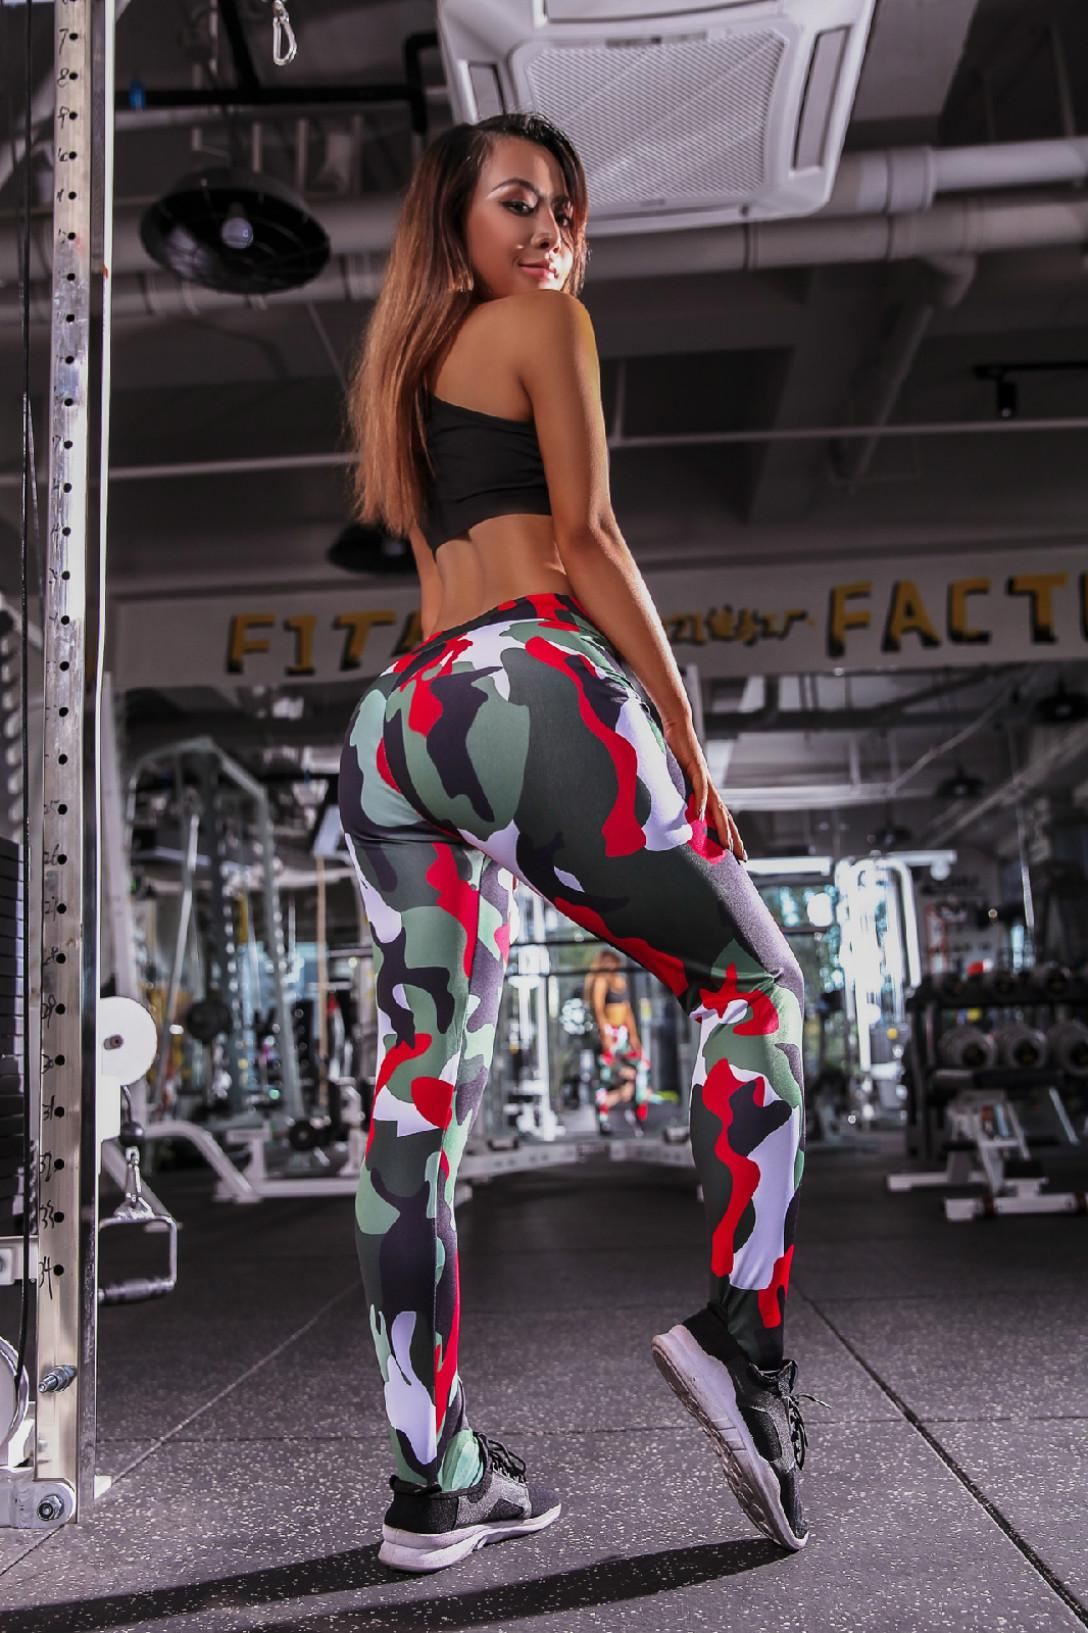 Spor Salonu Leggings 2020 Yeni Topmotion Yoga Jersey Running Tasarımcı Kamuflaj Yoga Pantolon Baskı Moda Sweatpants Womens